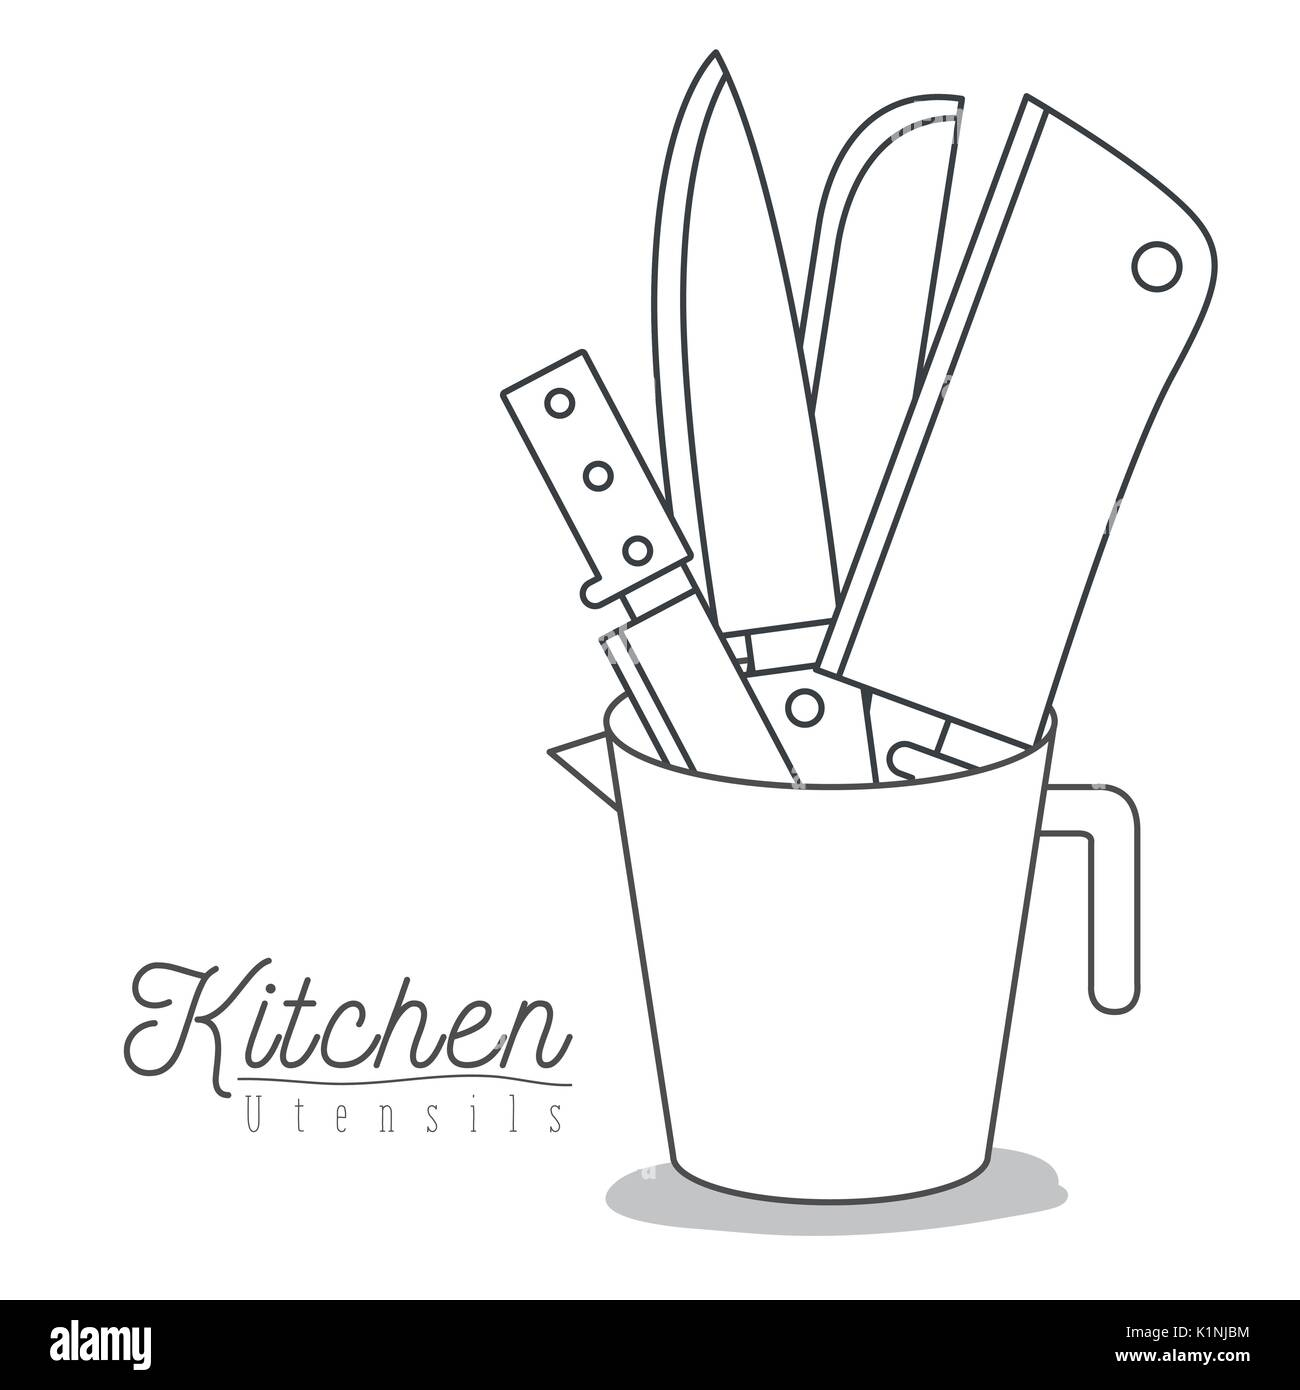 white background with set silhouette knifes kitchen utensils in jar - Stock Image